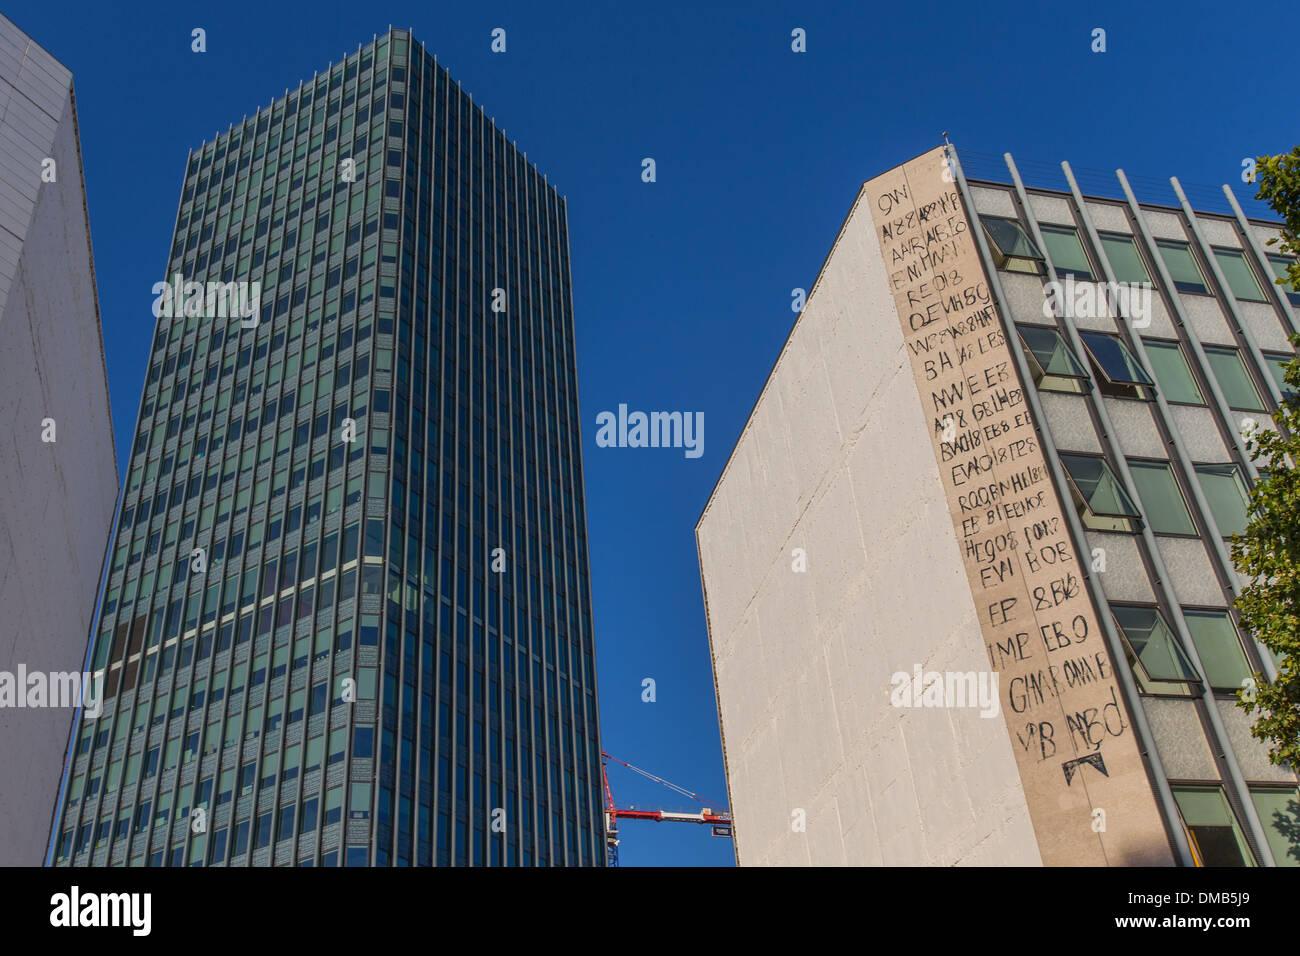 JUSSIEU CAMPUS FOR THE FACULTY OF SCIENCES - Stock Image